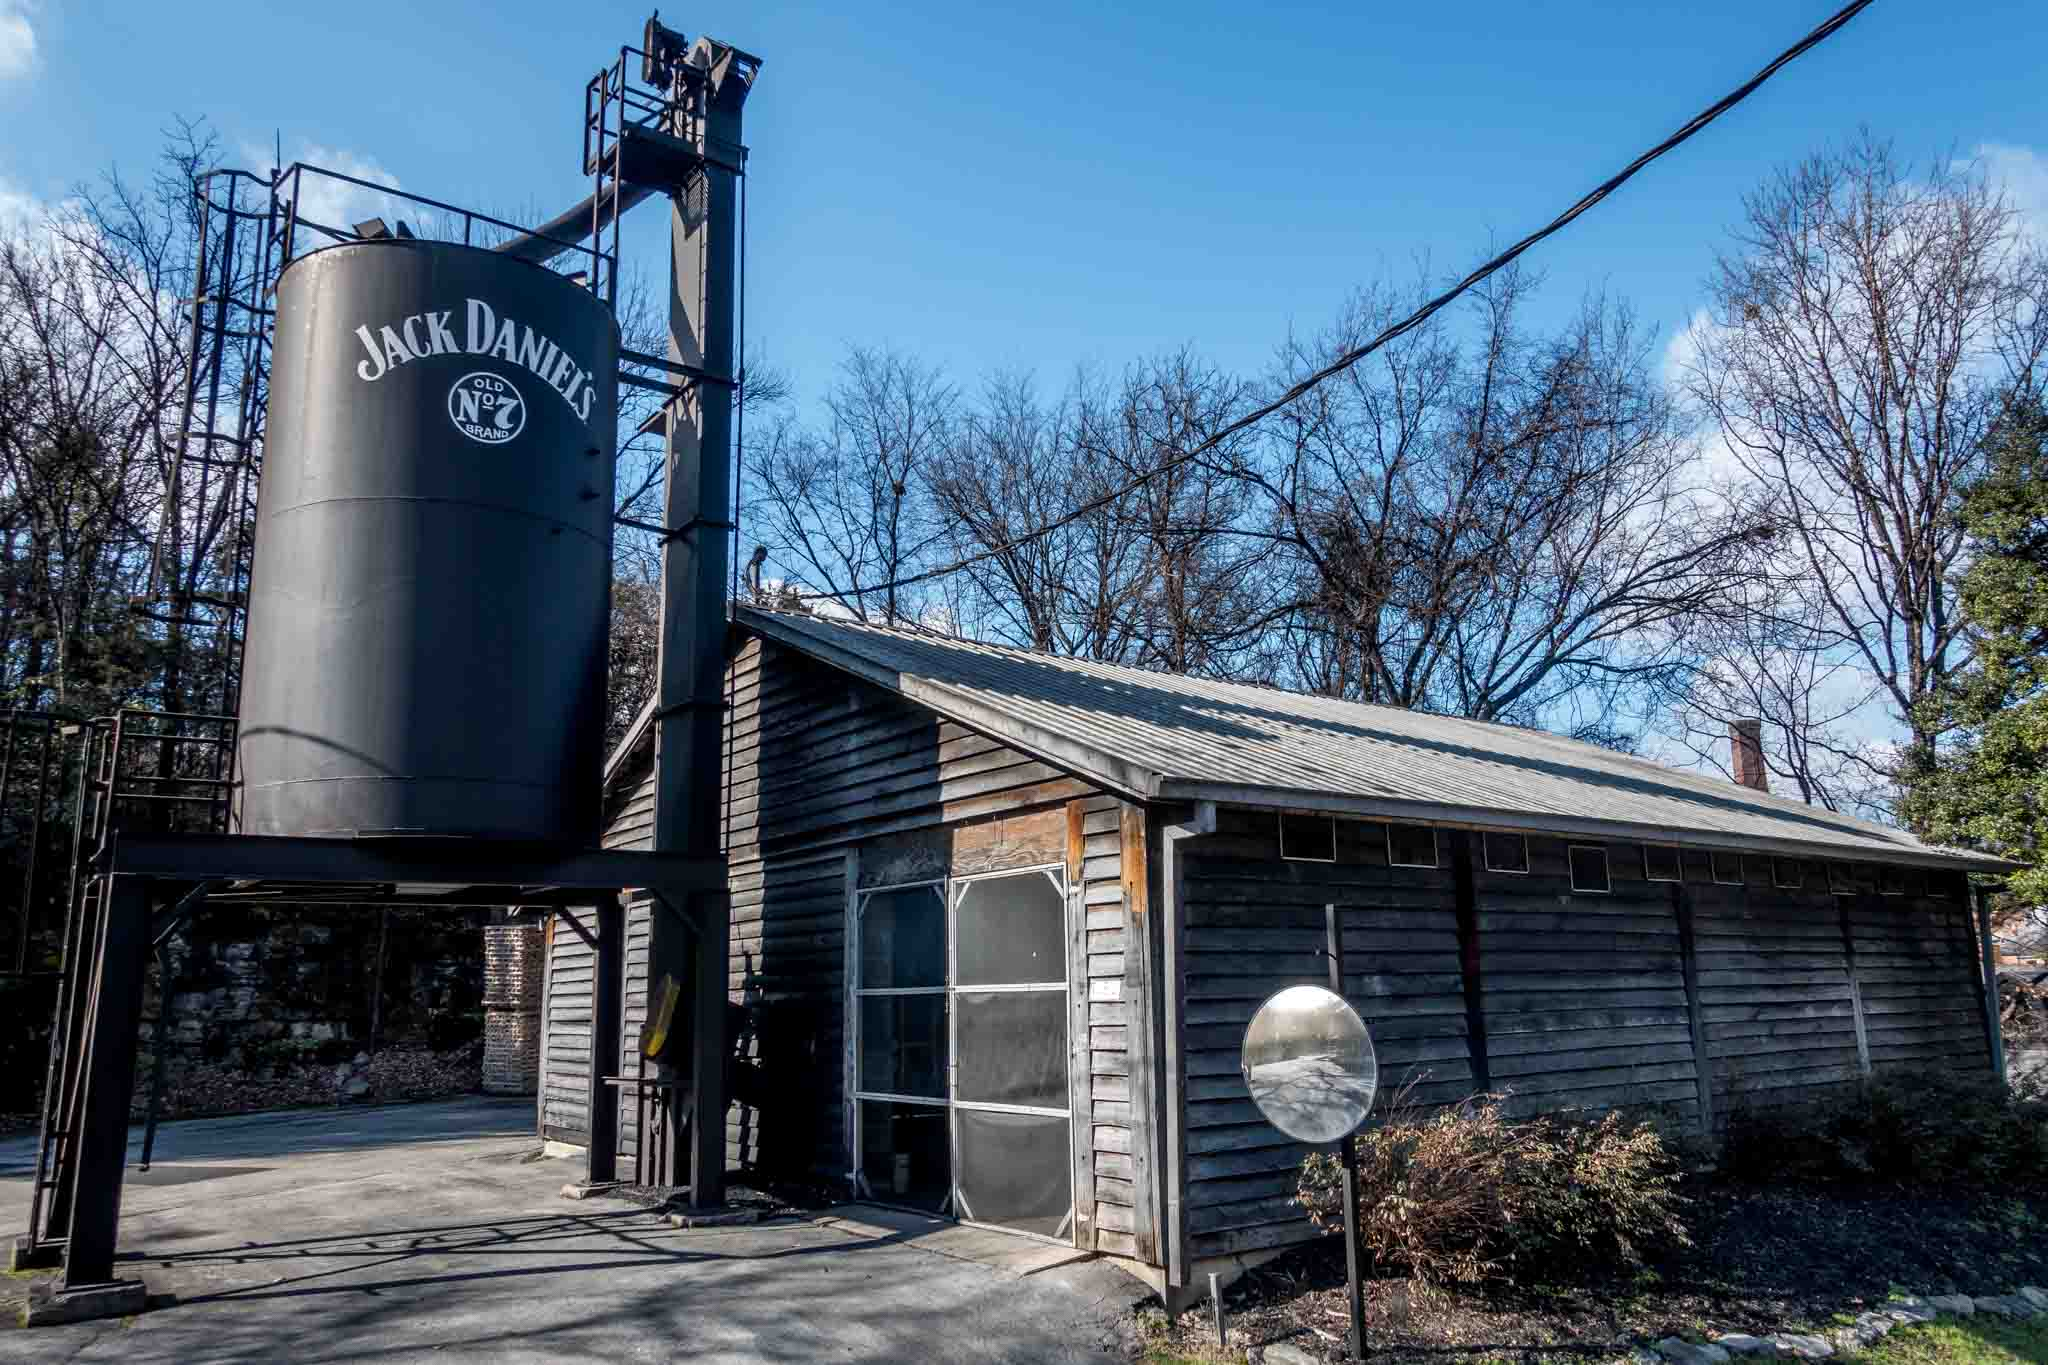 One of the buildings at Jack Daniels distillery in Lynchburg TN